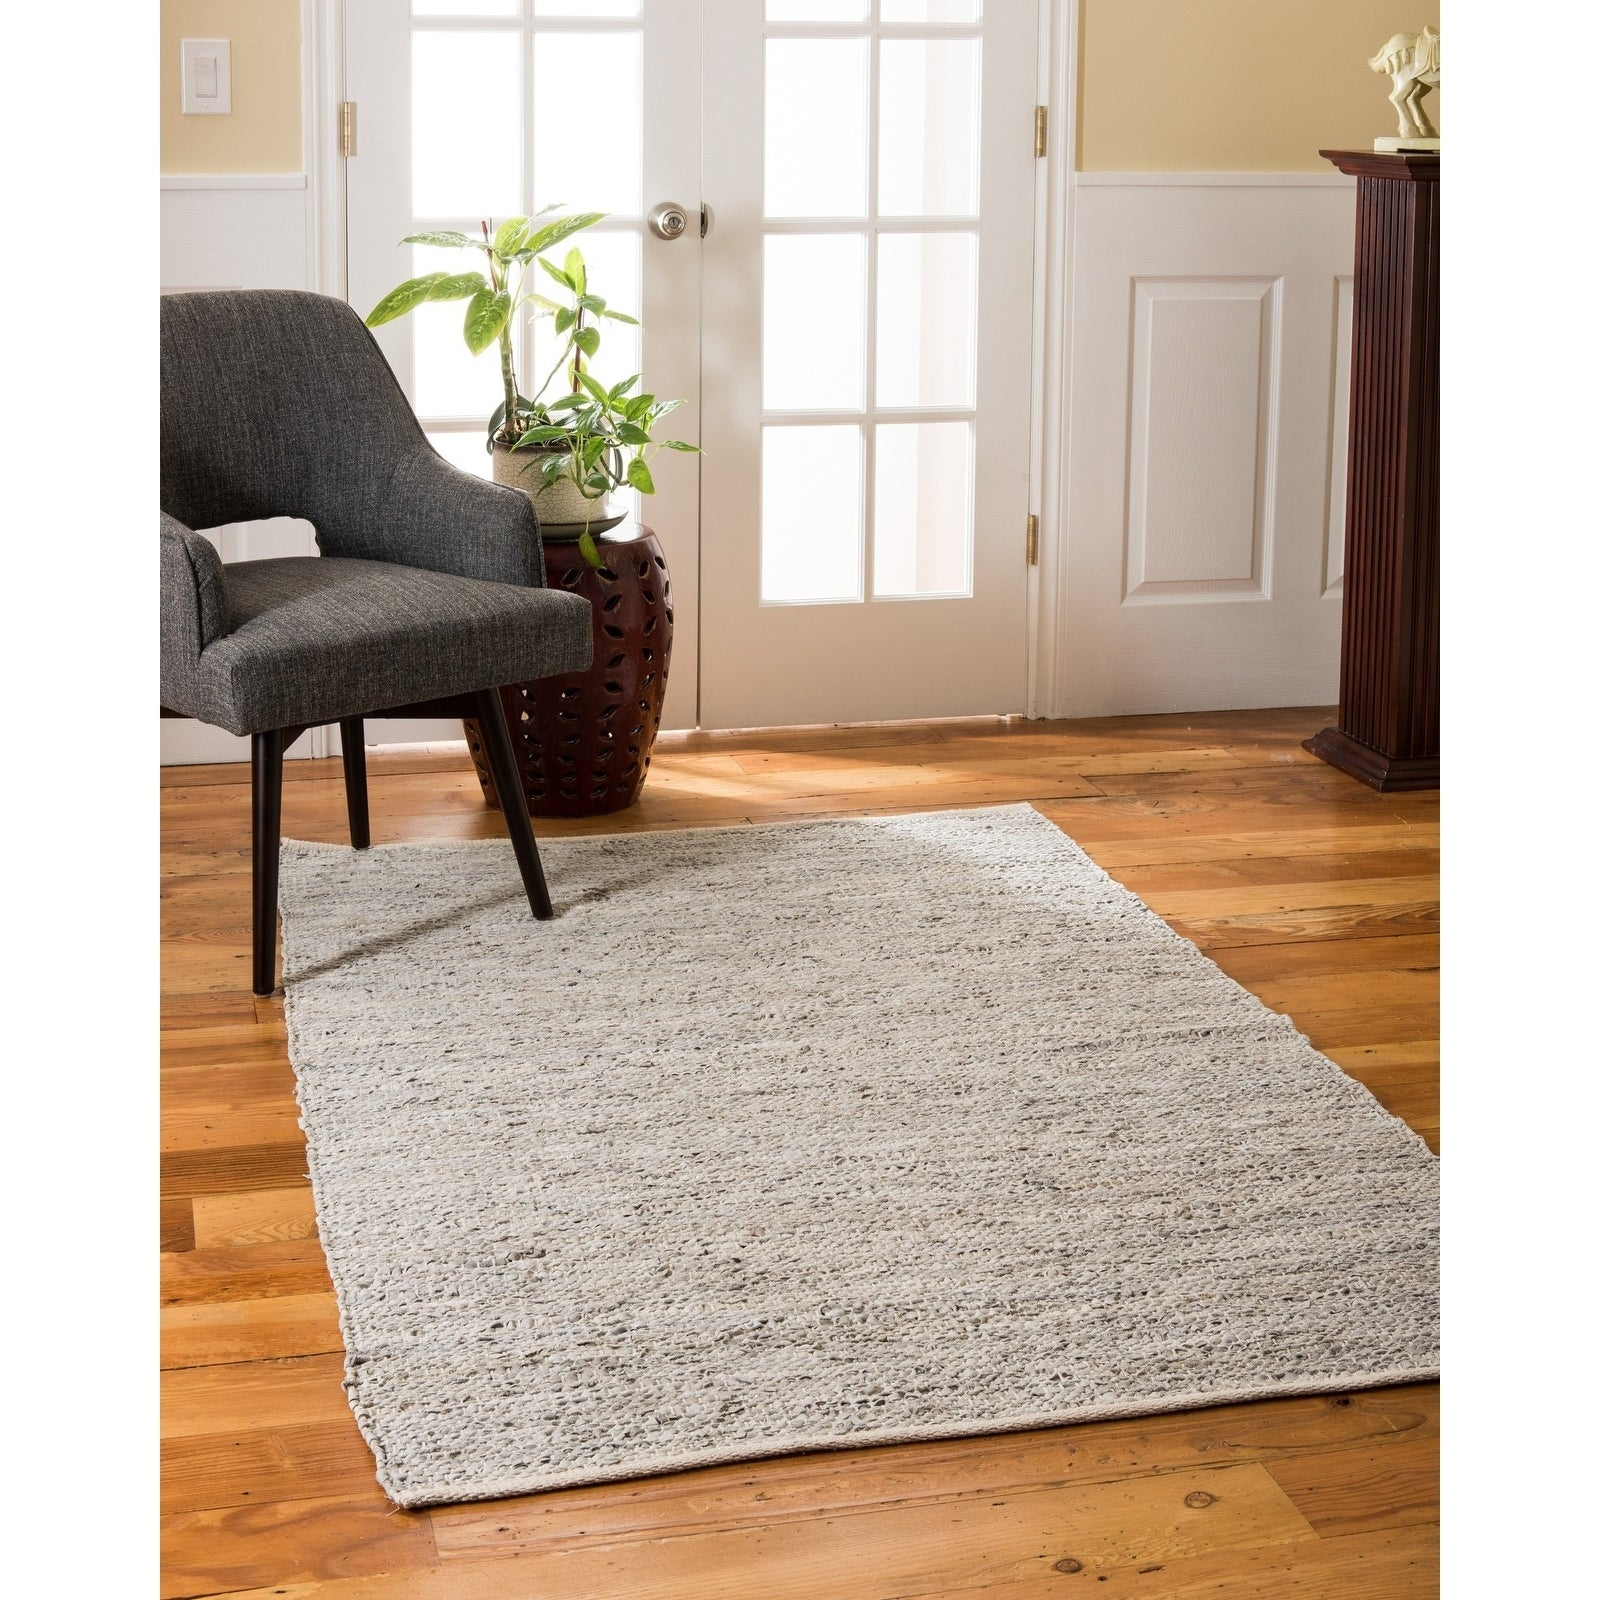 Natural Area Rugs Handmade Reversible Anchor Leather Rectangle Rug (8X10) Gray - 8 x 10 (8 x 10 - Grey)